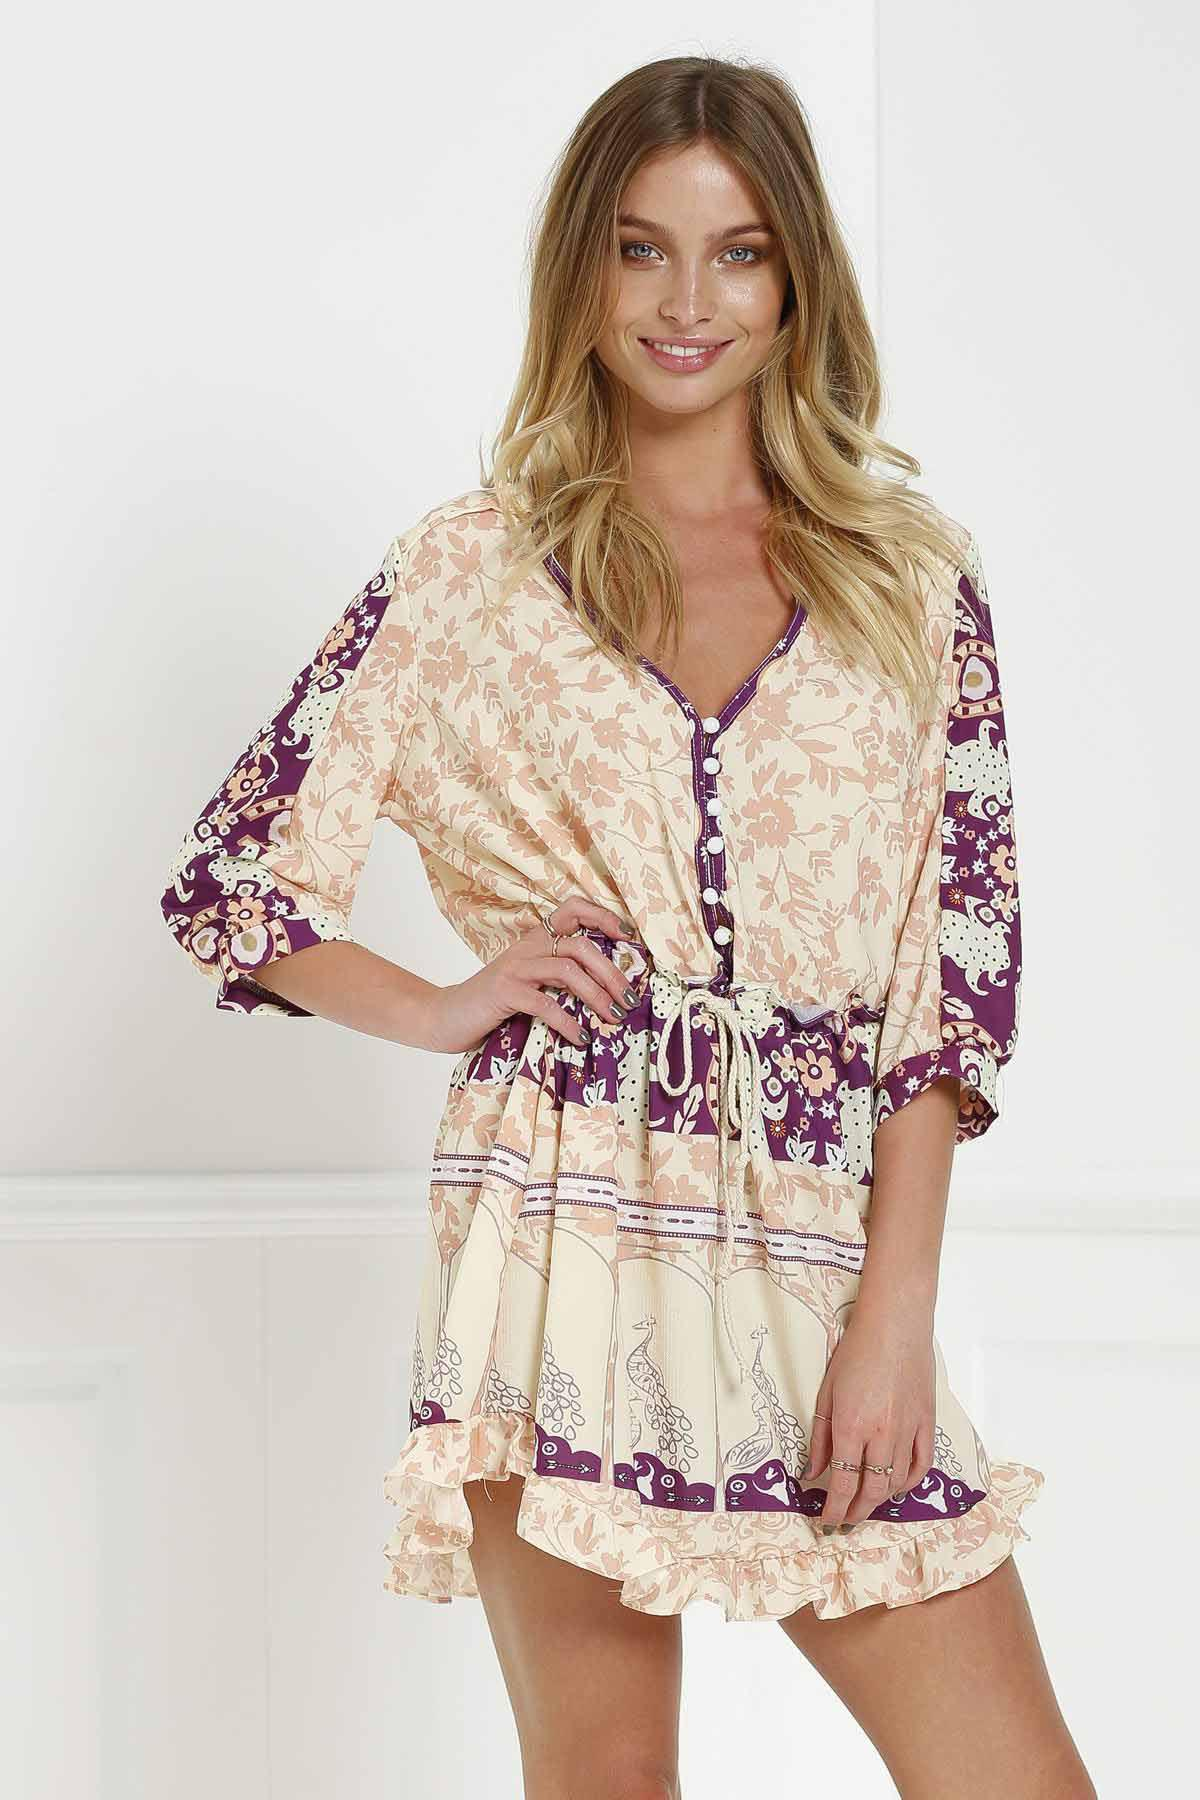 Stylish V-Neck 3/4 Sleeve Floral Print Loose-Fitting Women's Tunic Dress - COLORMIX XL